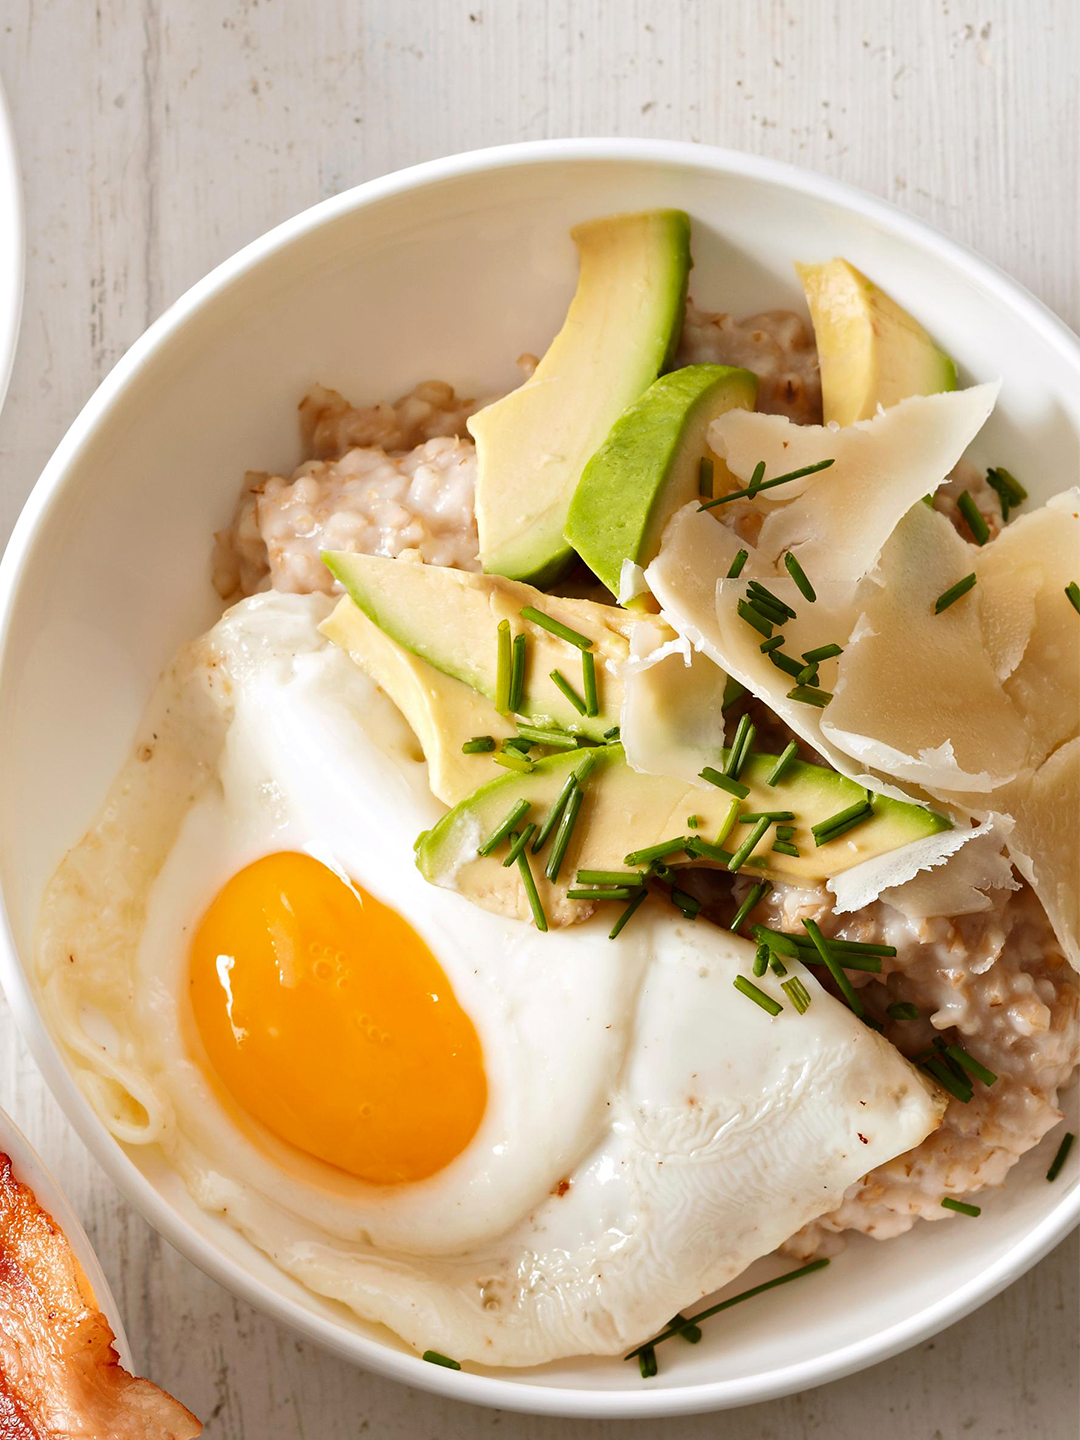 Oatmeal with Sunny-Side Up Eggs, Avocado, Cheddar, and Chives in white bowl